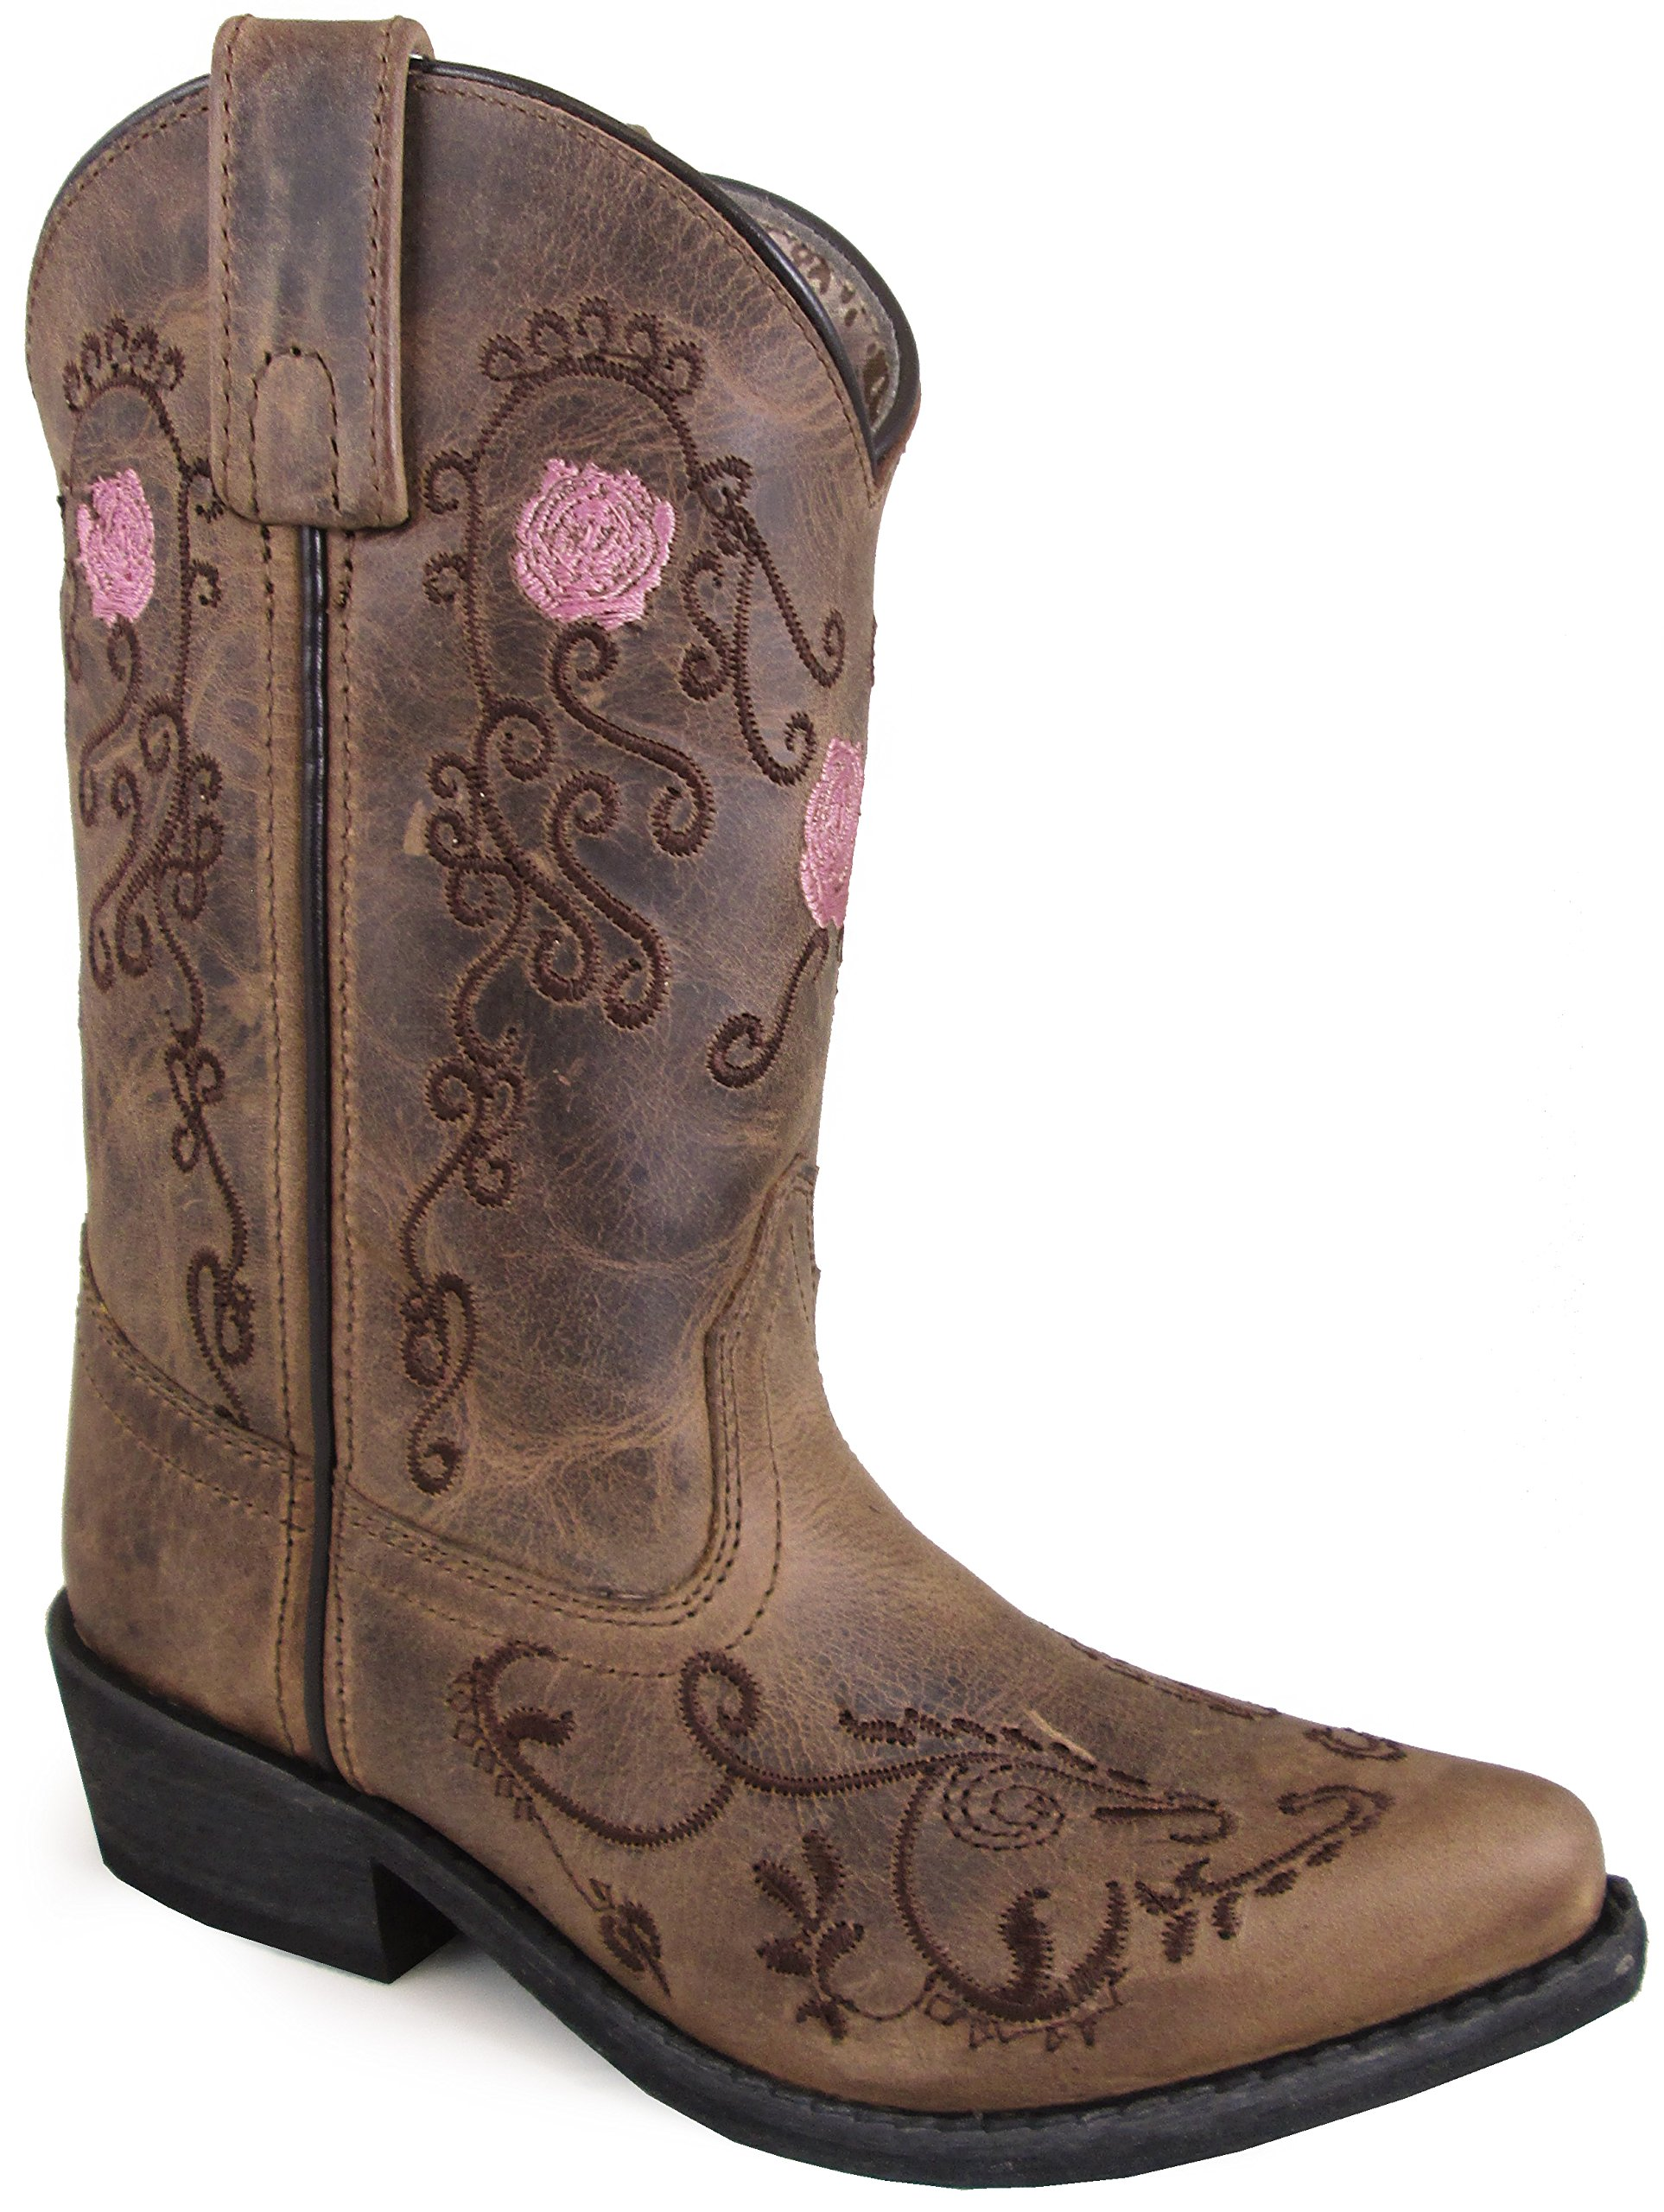 Smoky Mountain Youths' Rosette Pull On Embroidered Floral Snip Toe Brown Oil Distress Boots 4.5M